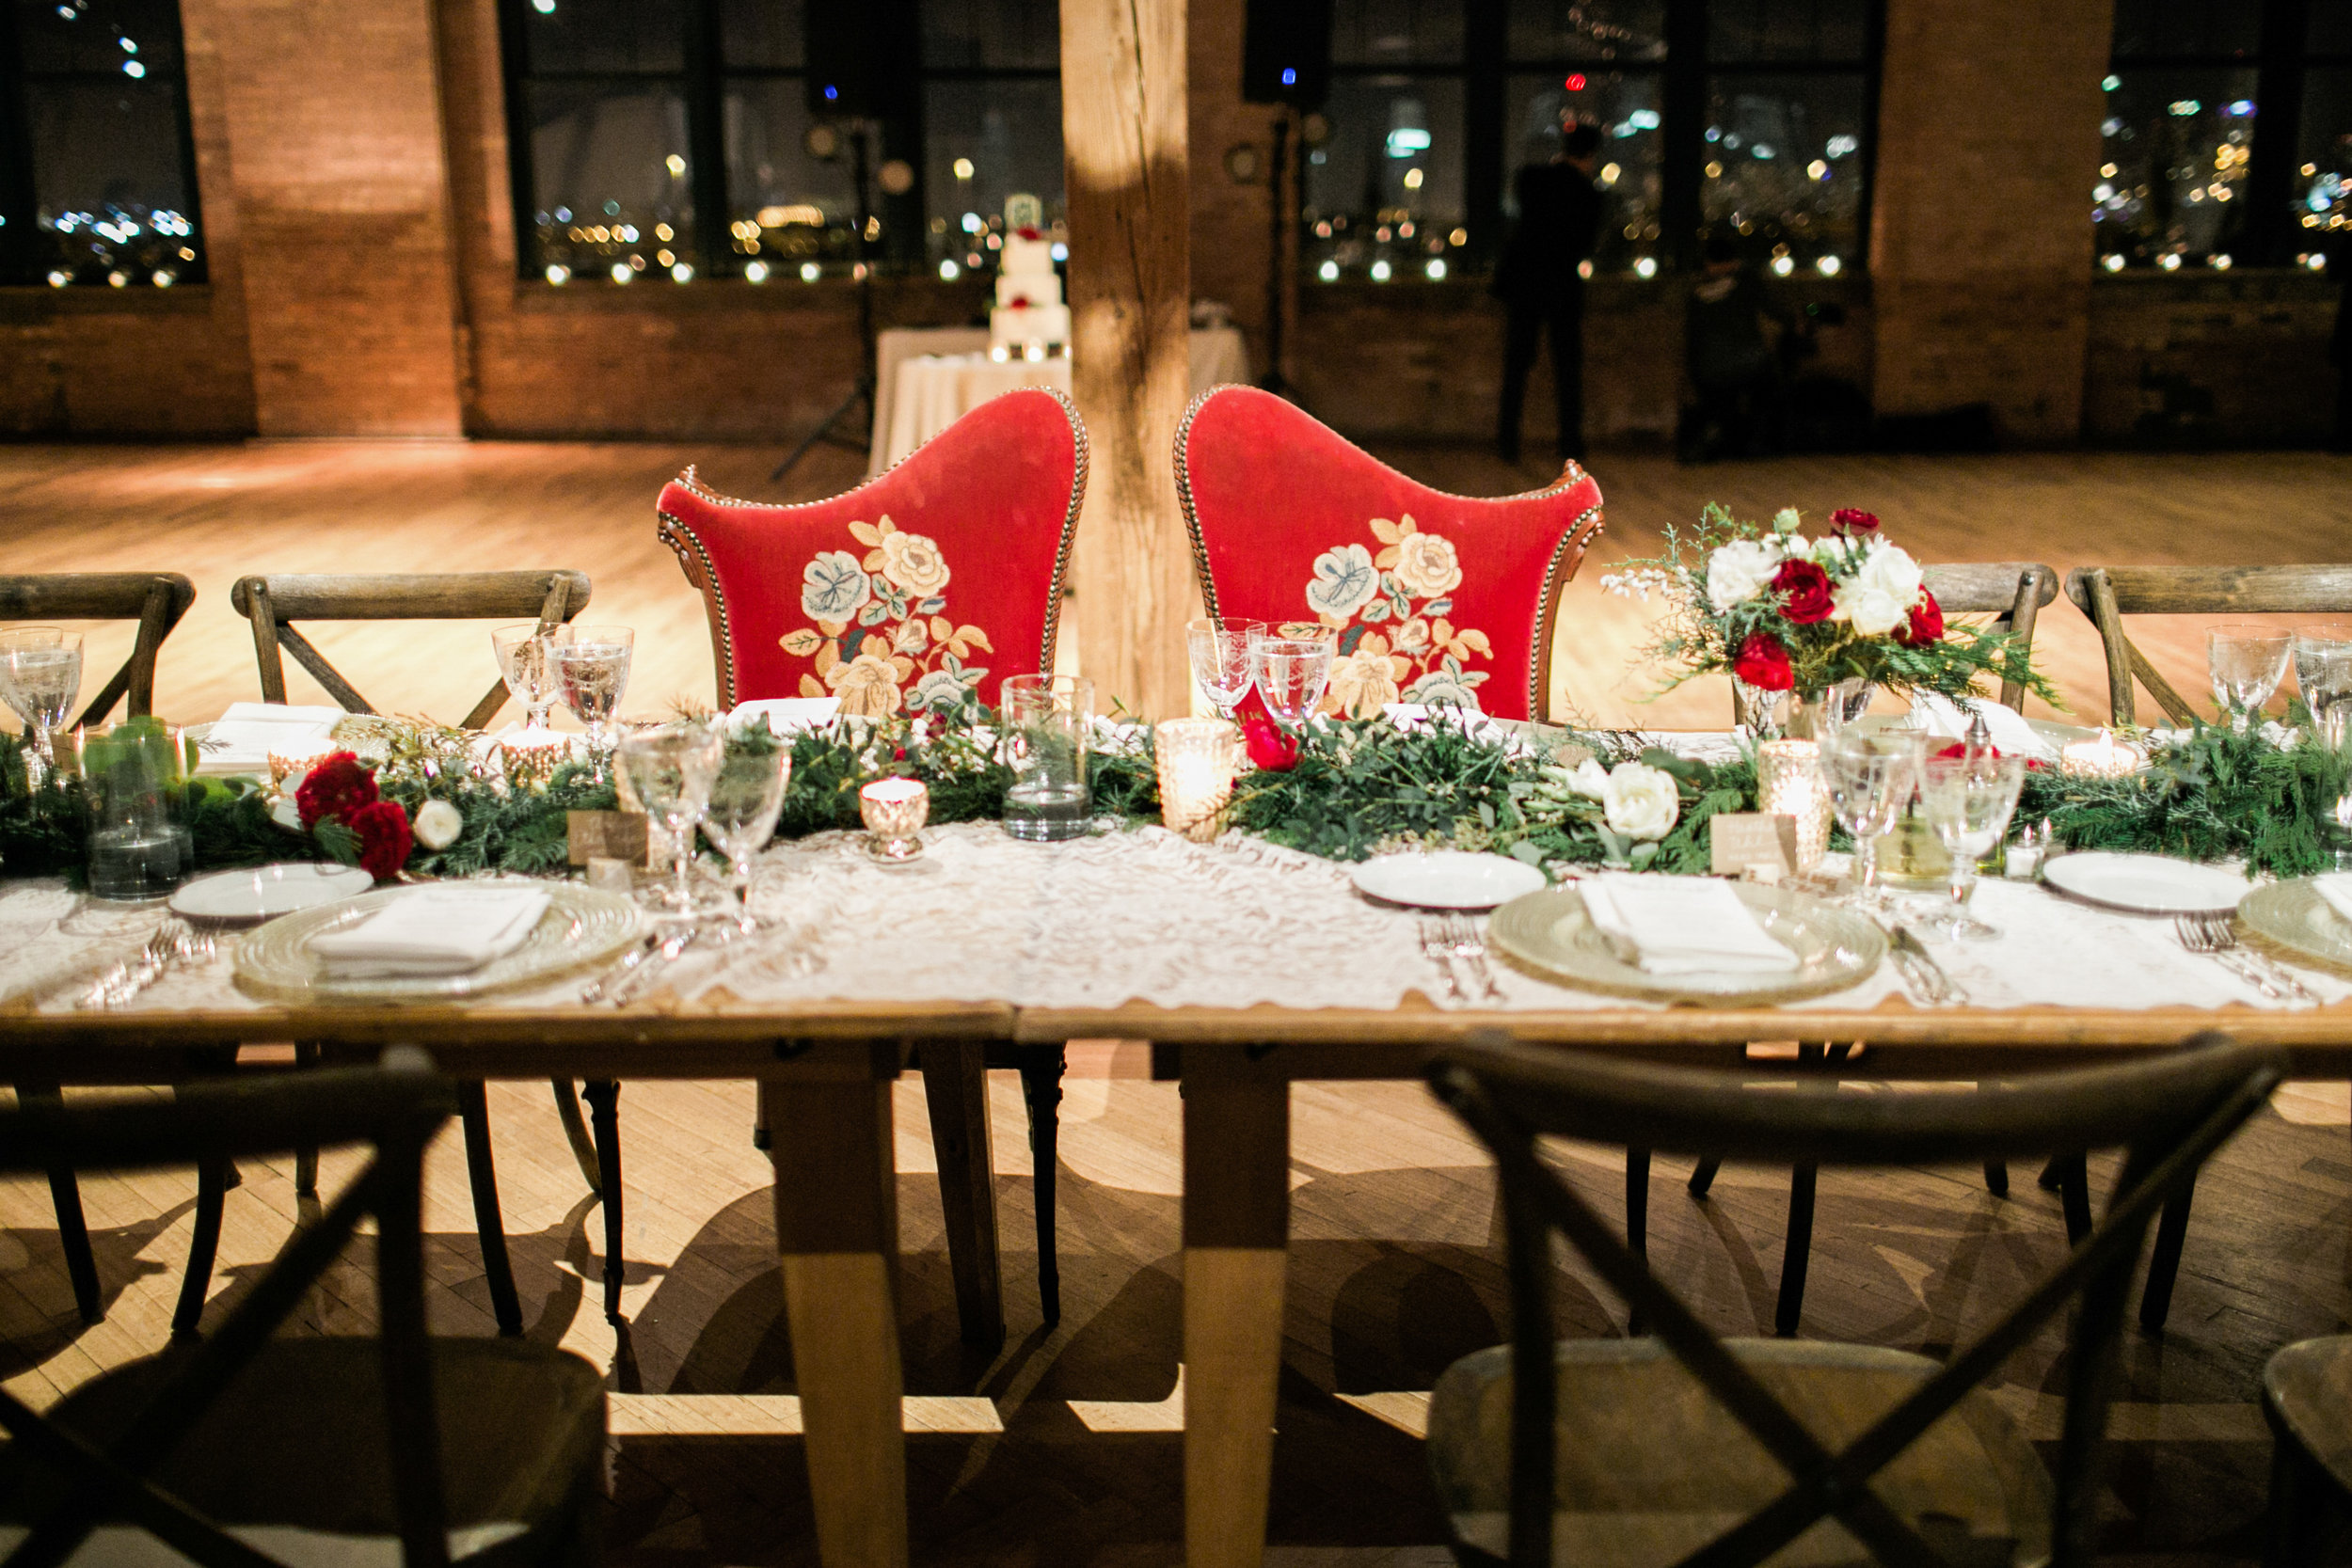 BridgeportArtCenterWeddingHolidayDecor